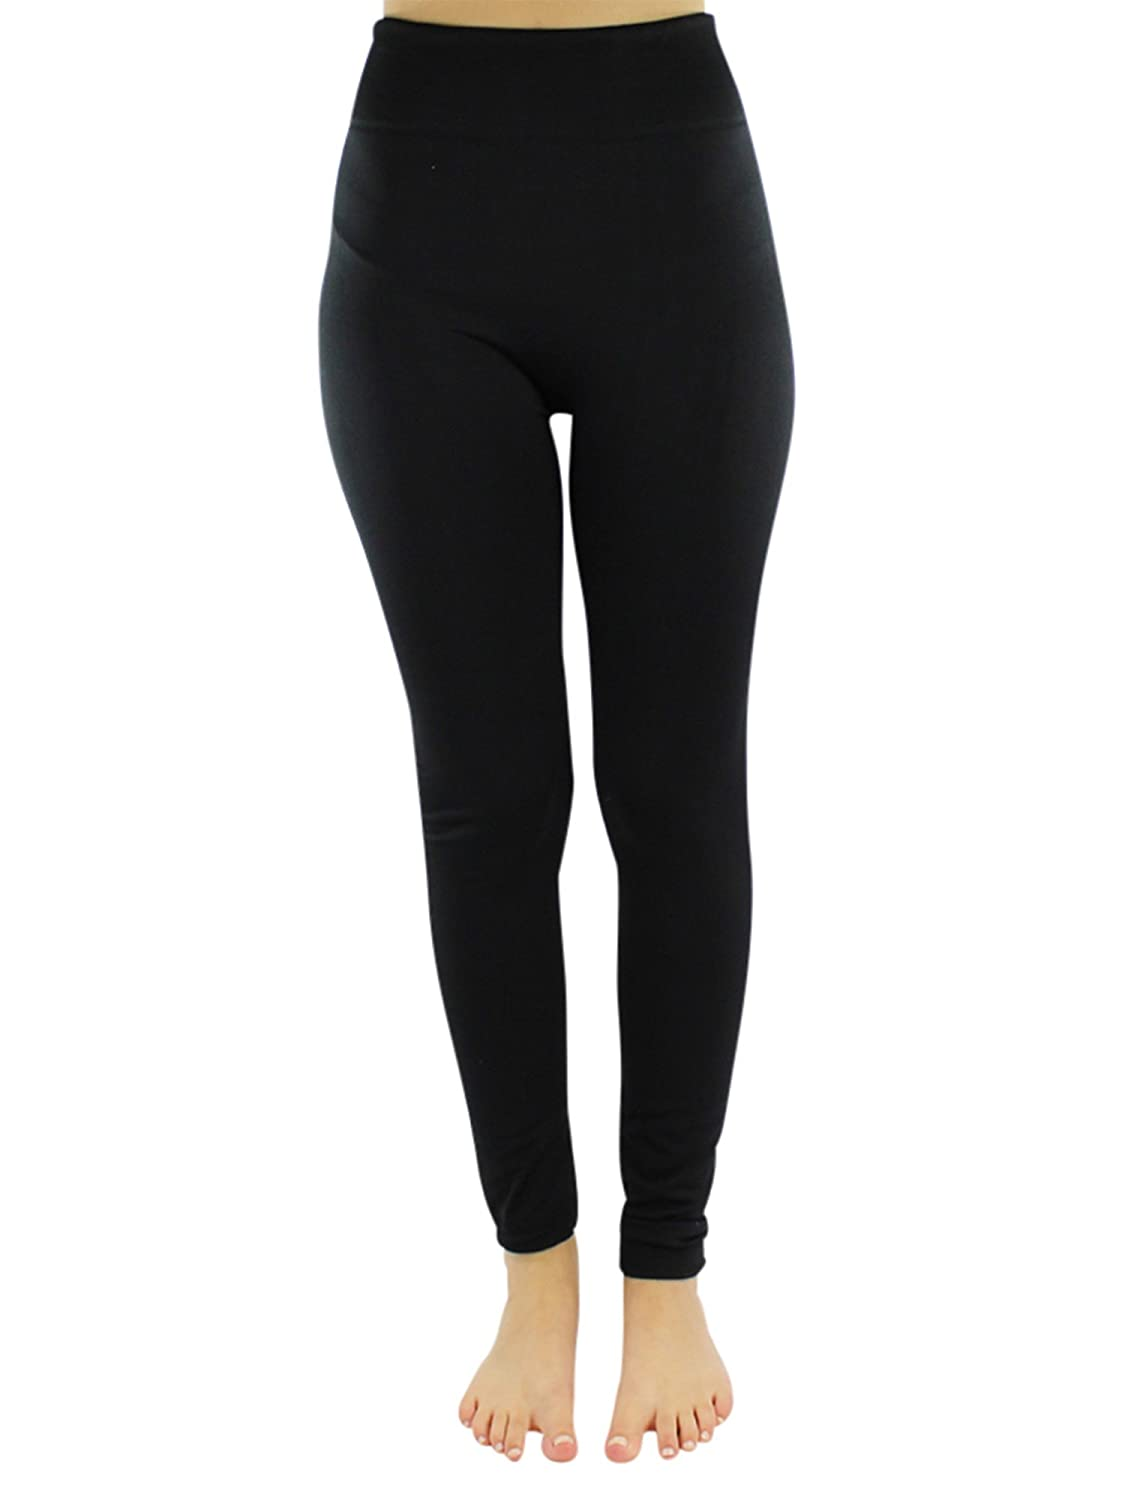 317149cefe085 Black Seamless Stretchy Fleece Lined Leggings at Amazon Women's Clothing  store: